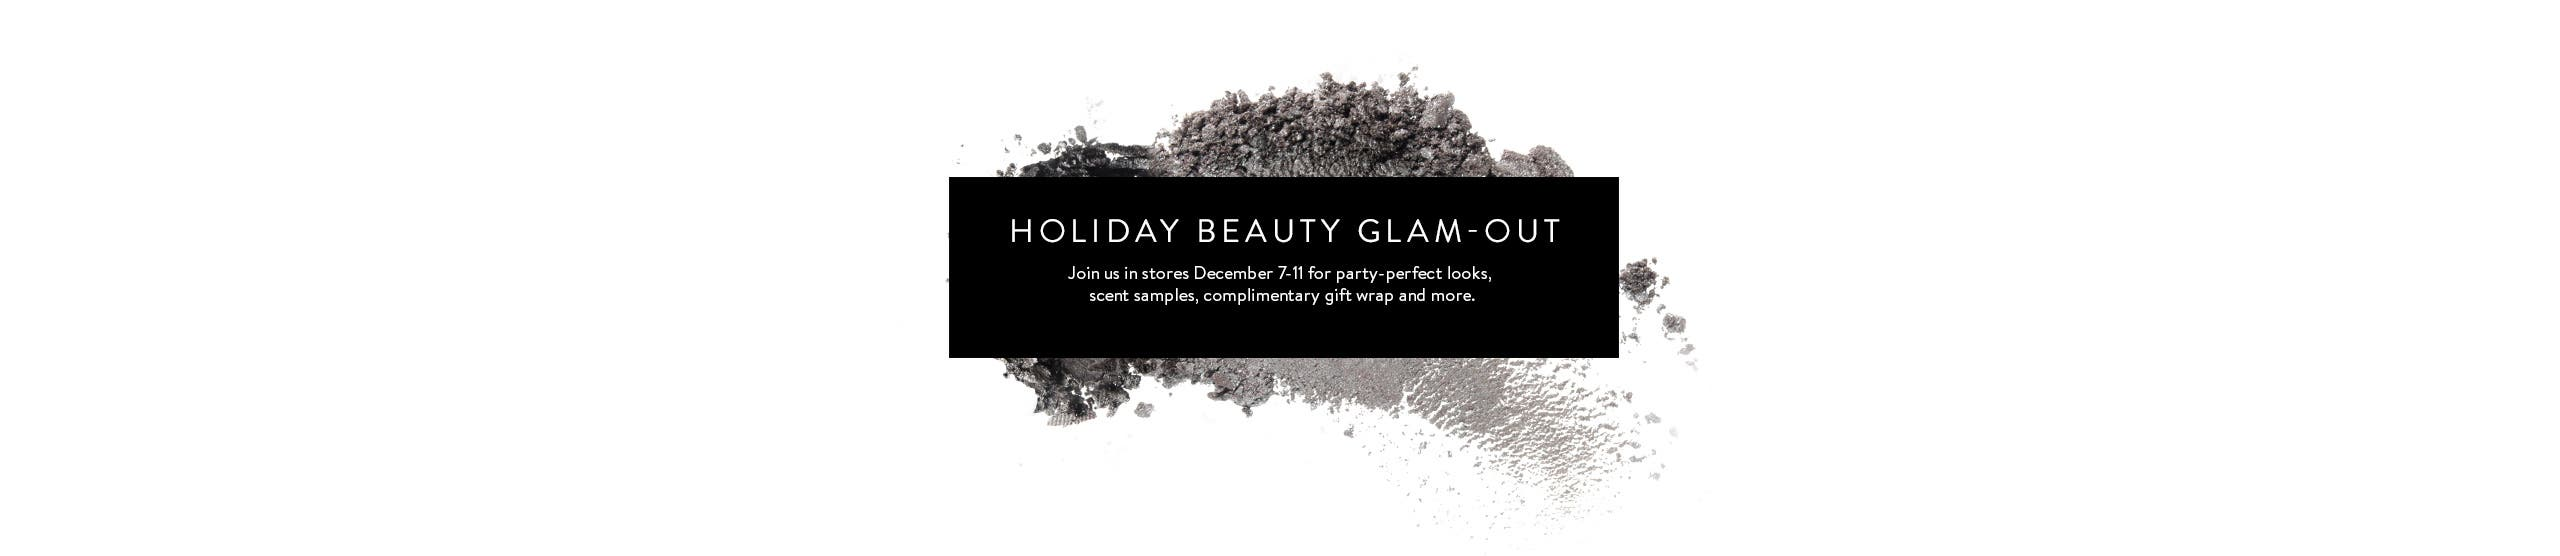 Holiday Beauty Glam-Out: an in-store beauty event.